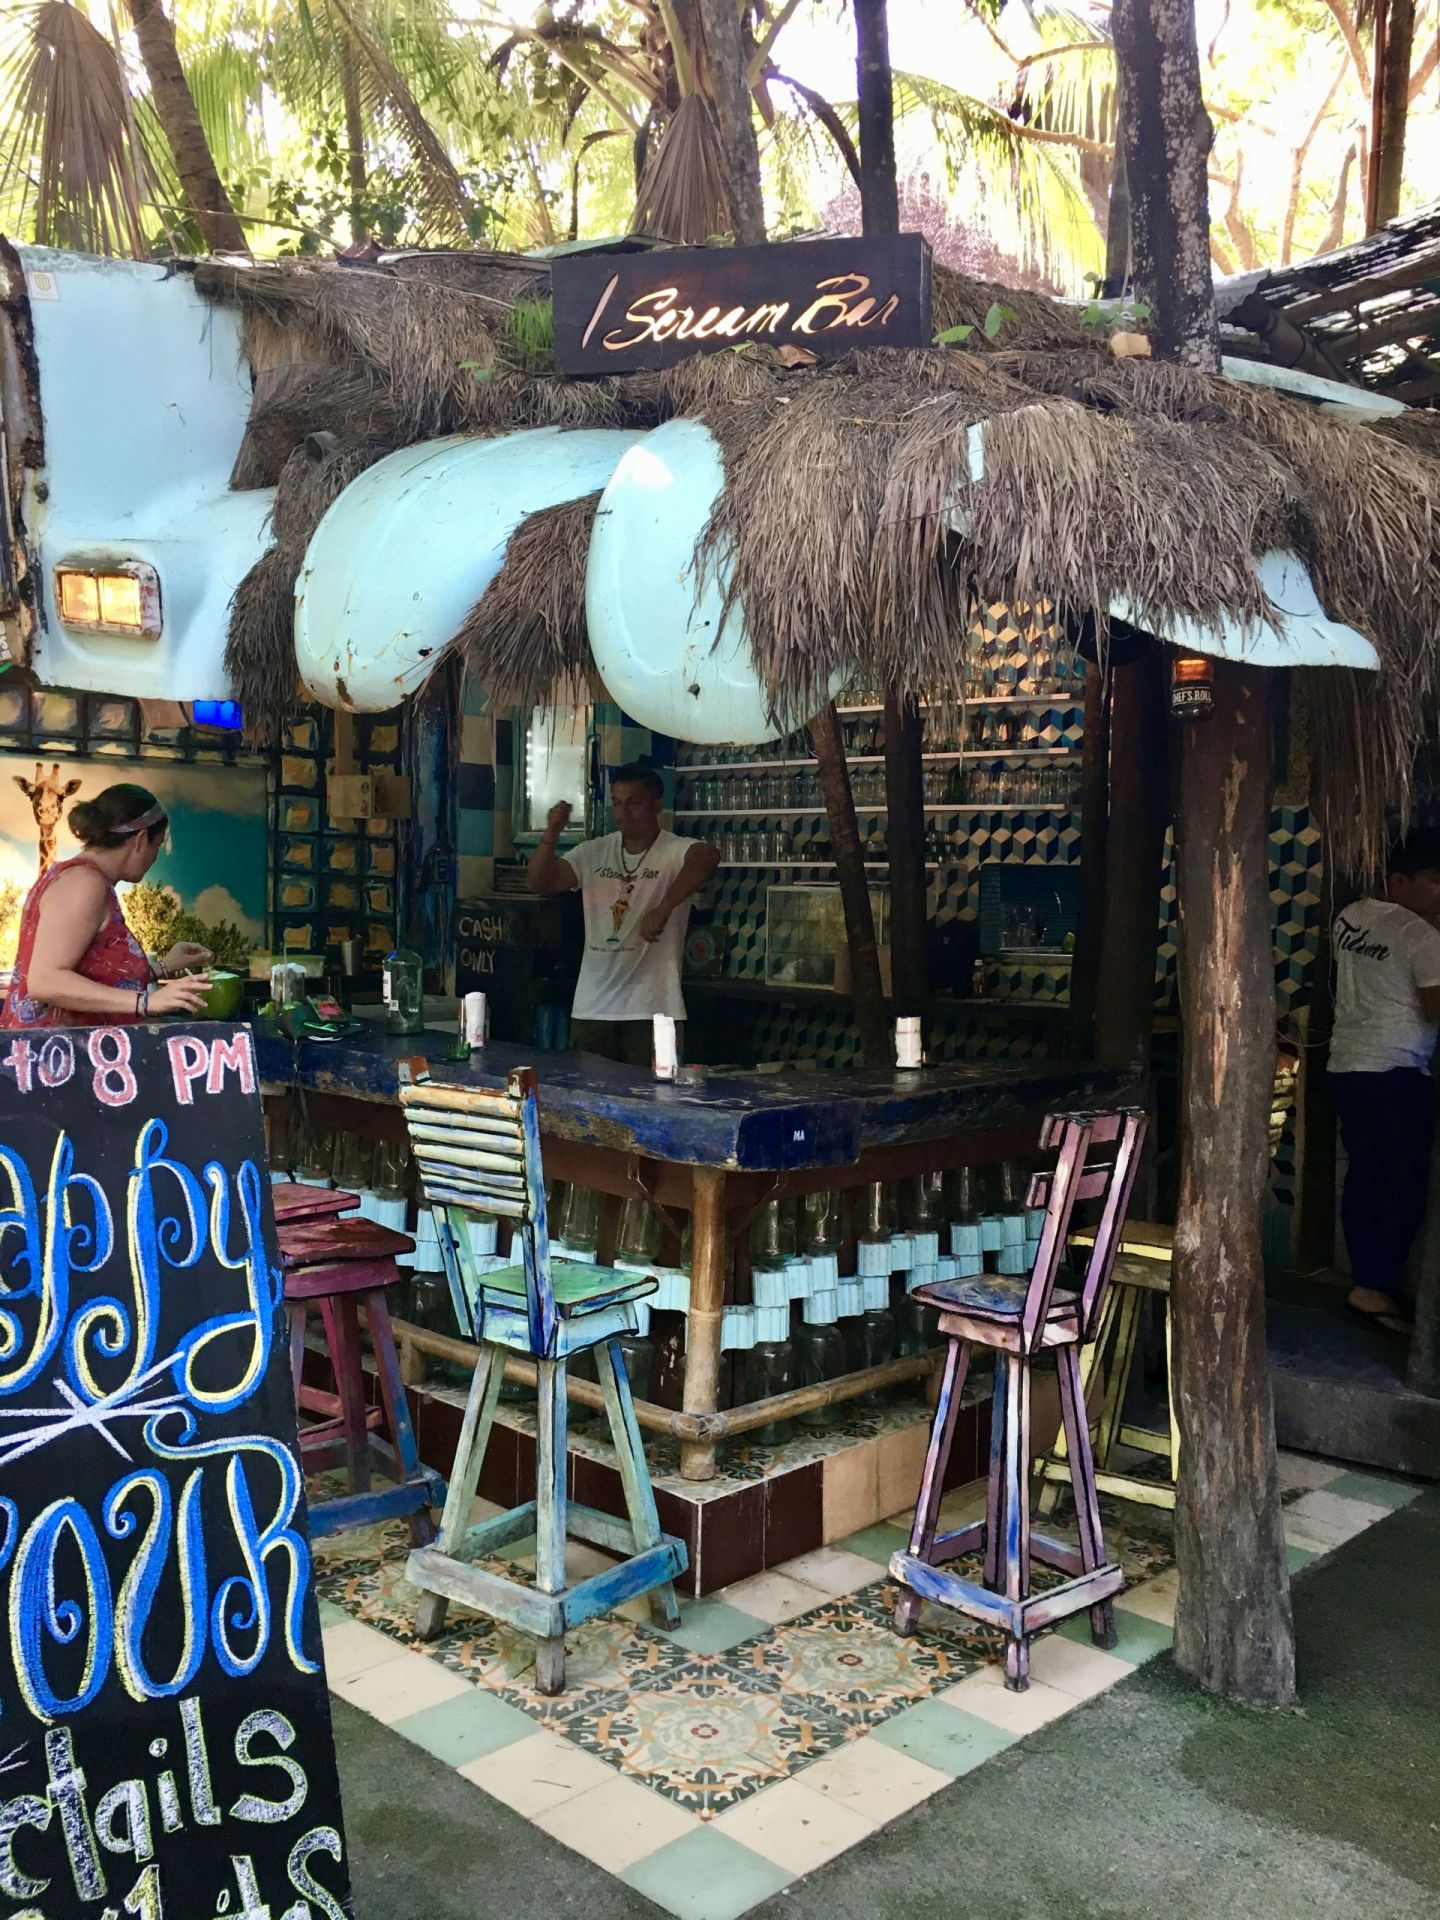 Tulum has a lot of nightlife possibilities to explore